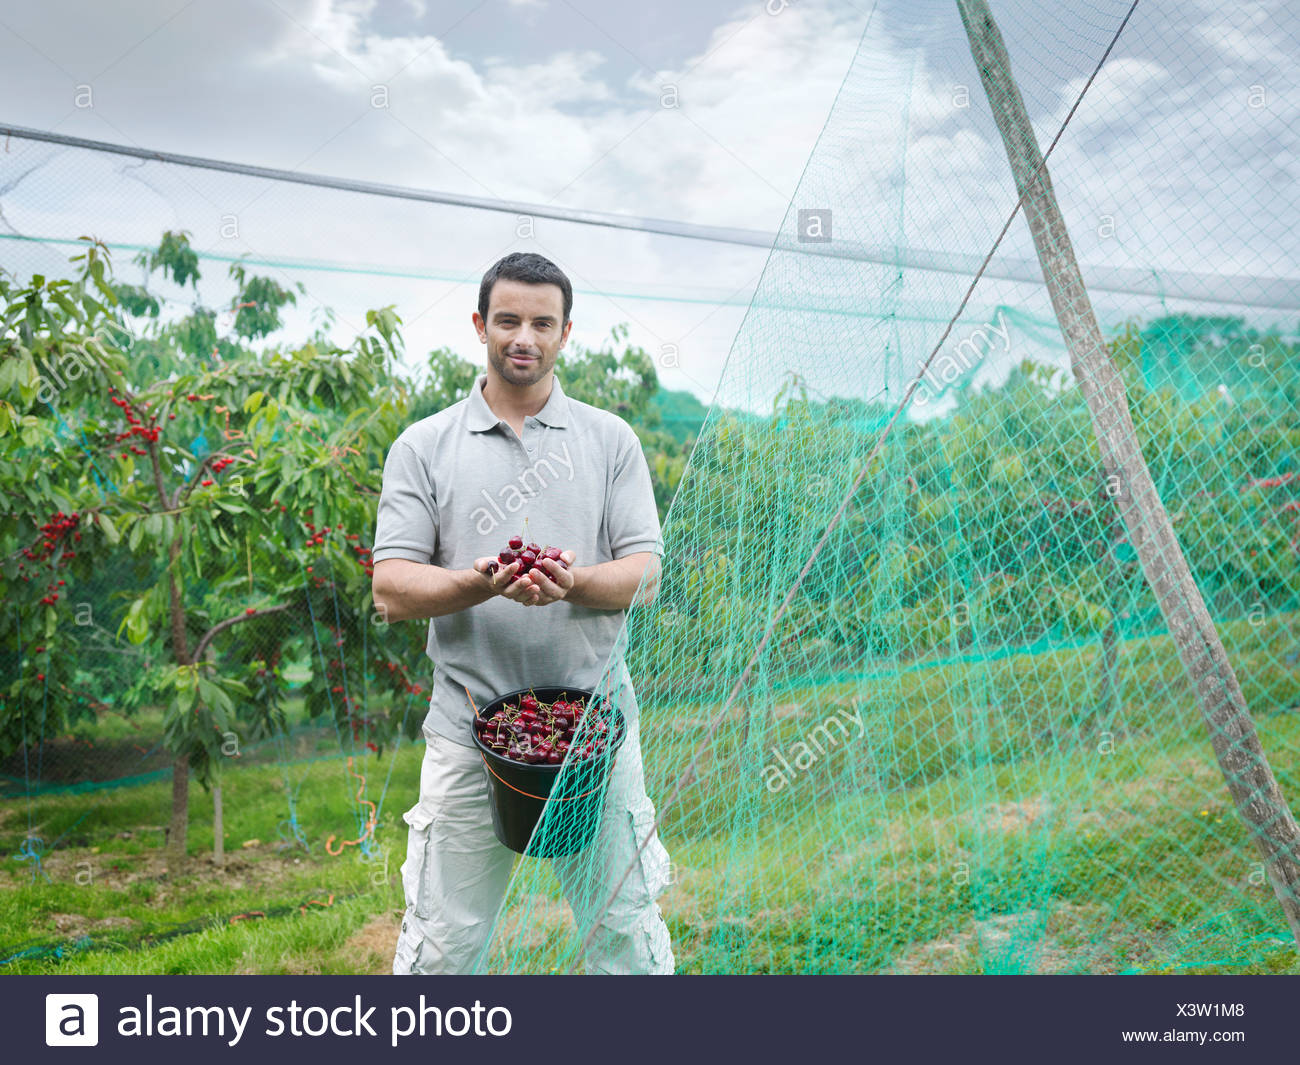 Man with bucket of cherries in orchard - Stock Image